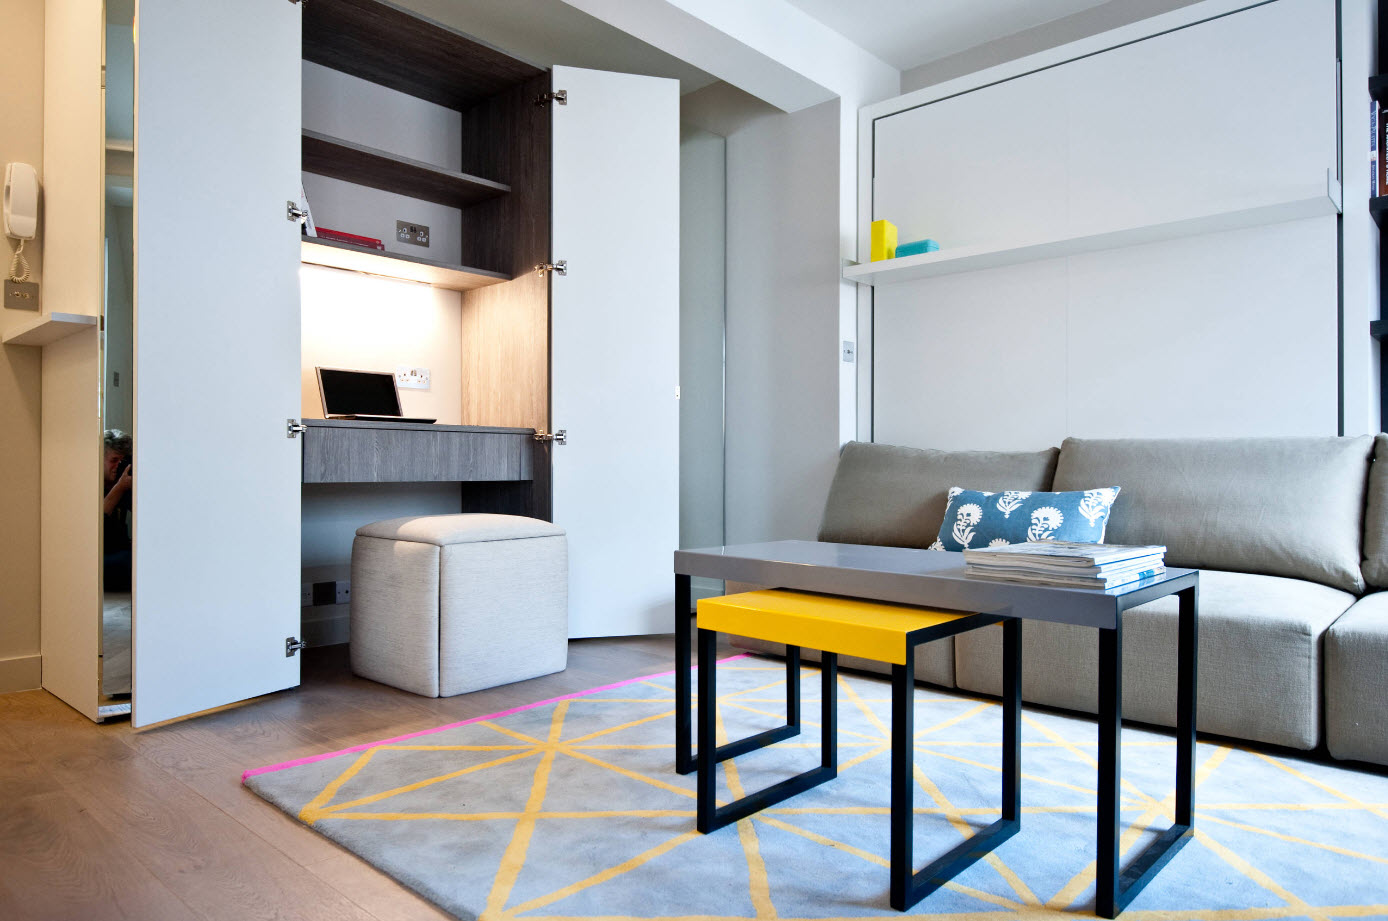 Design Studio 28 Square M 54 Photos The Layout Of The Studio Apartment Of 28 Meters With One Window And A Balcony